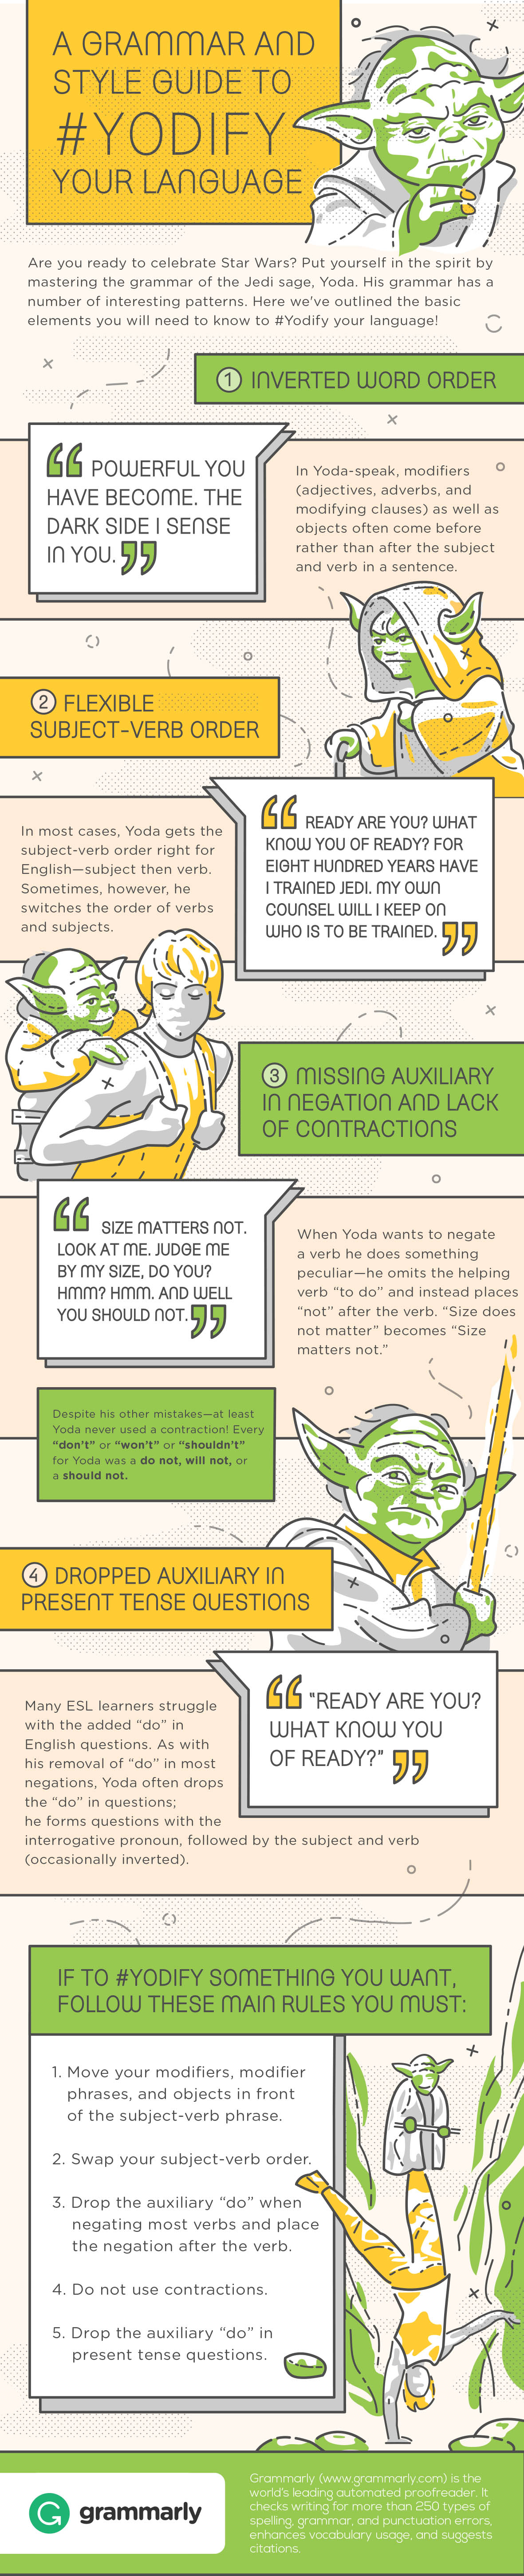 Yodify your Grammar Infographic